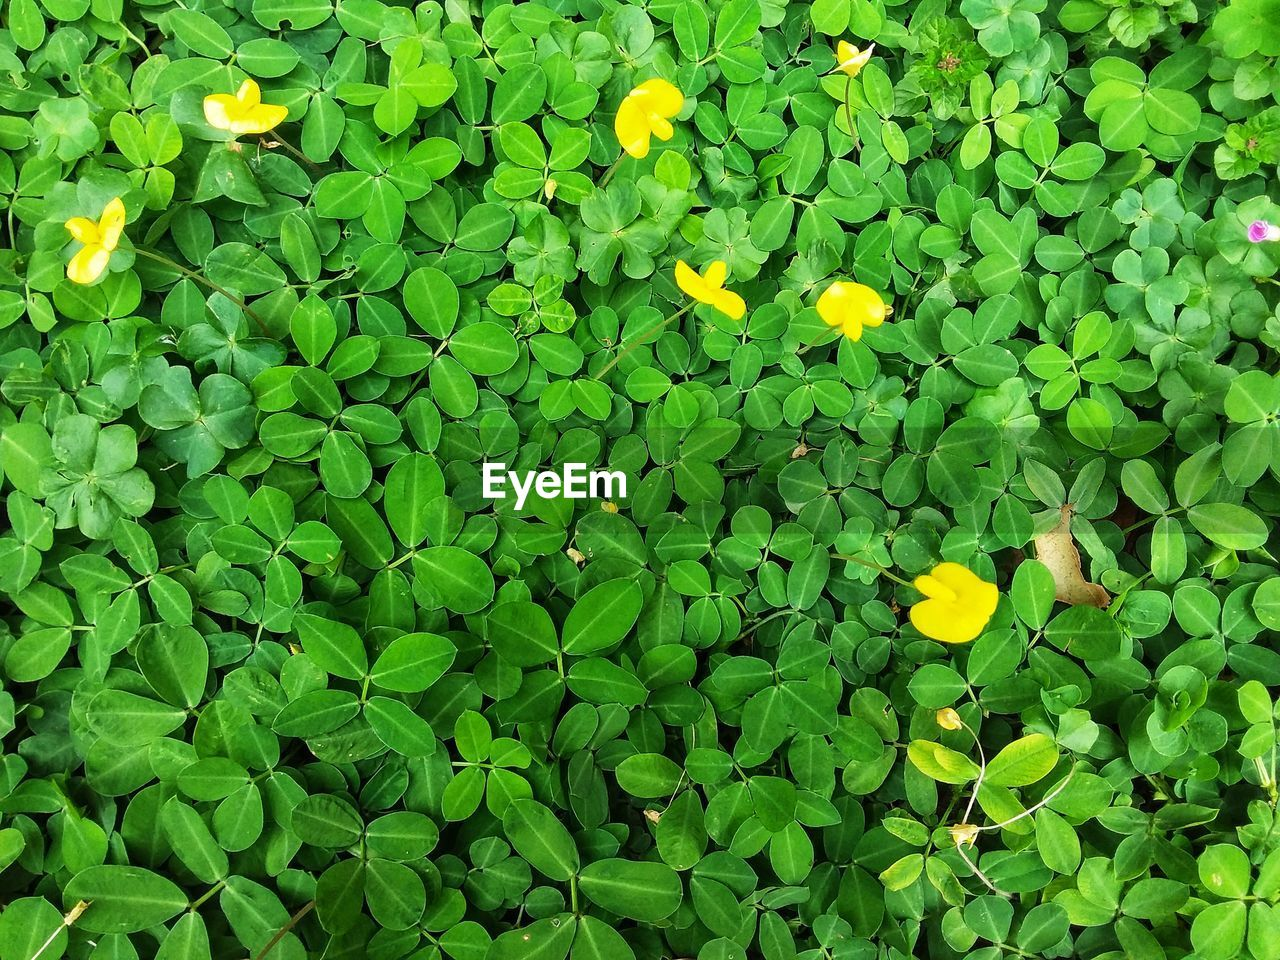 freshness, green color, plant, yellow, flower, flowering plant, growth, beauty in nature, plant part, leaf, fragility, vulnerability, nature, no people, petal, high angle view, day, close-up, full frame, inflorescence, flower head, outdoors